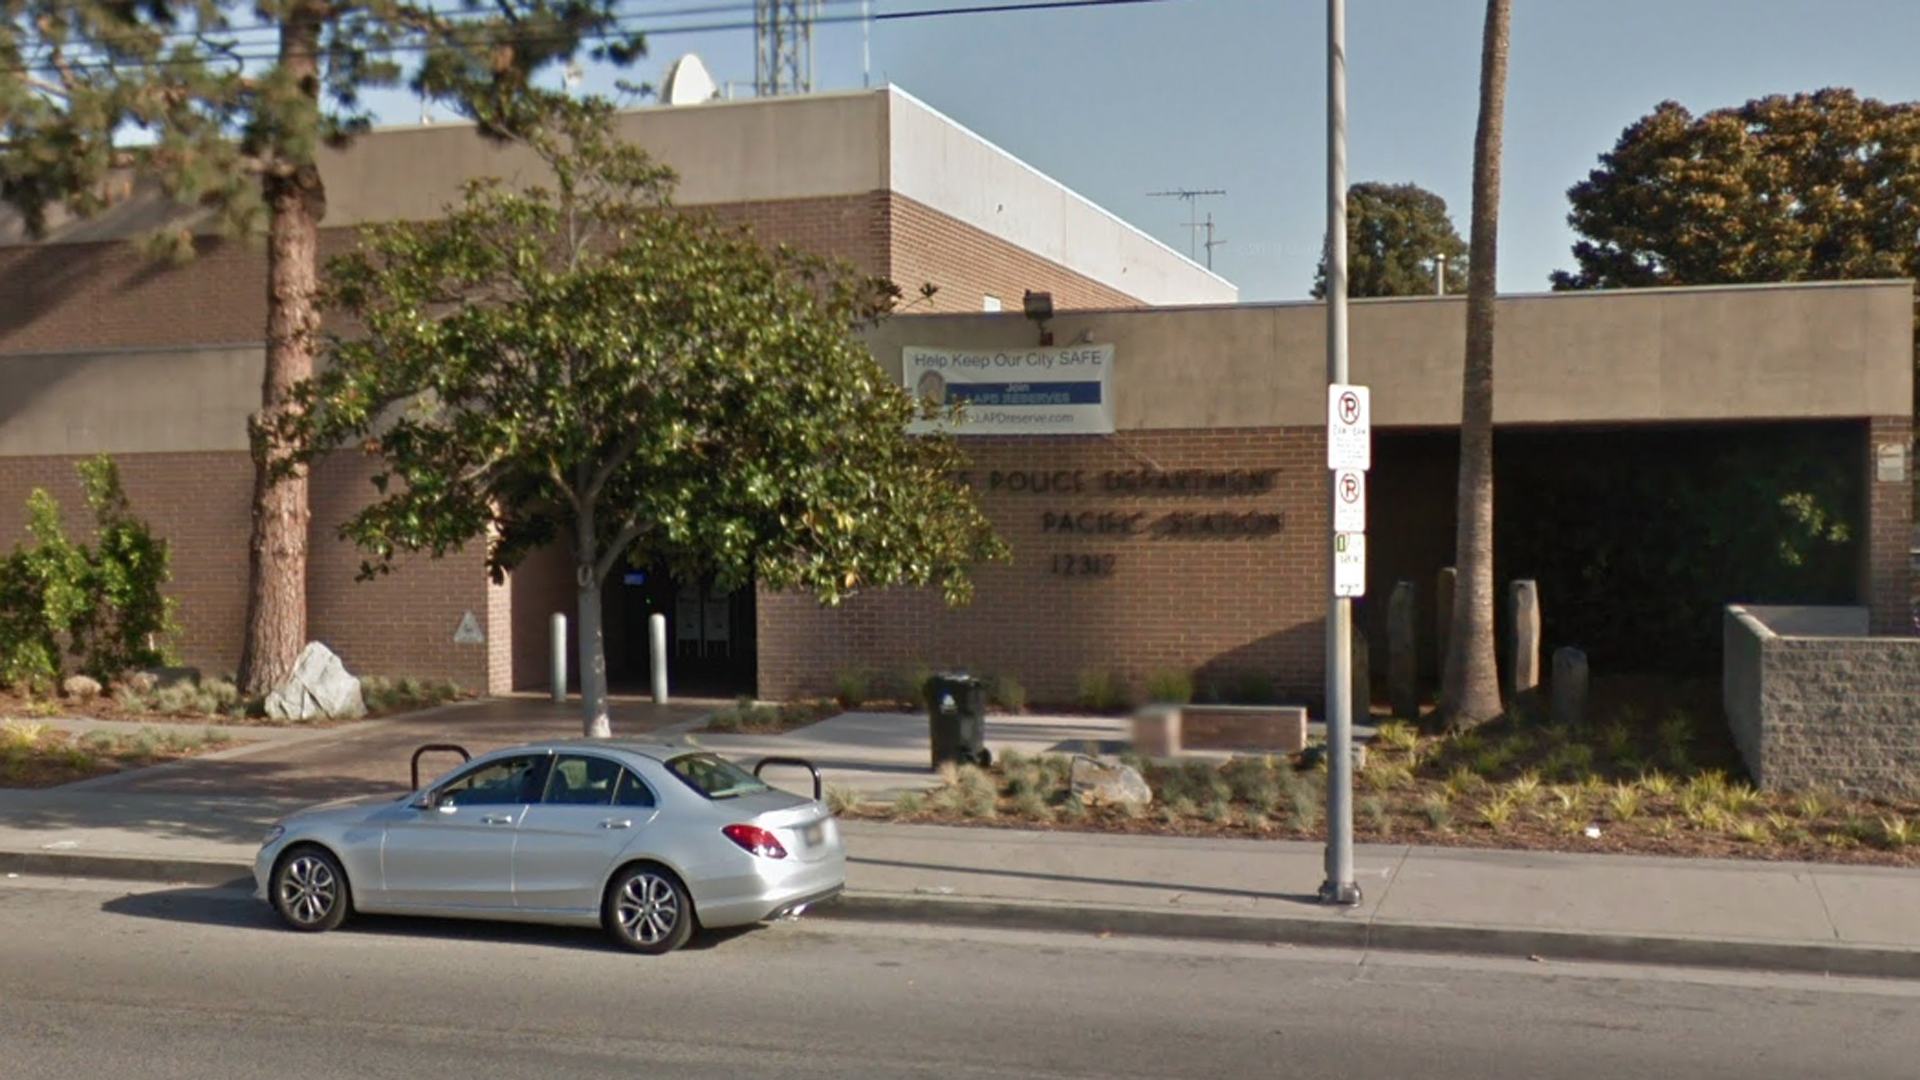 The LAPD's Pacific Station is seen in a Google Map image.